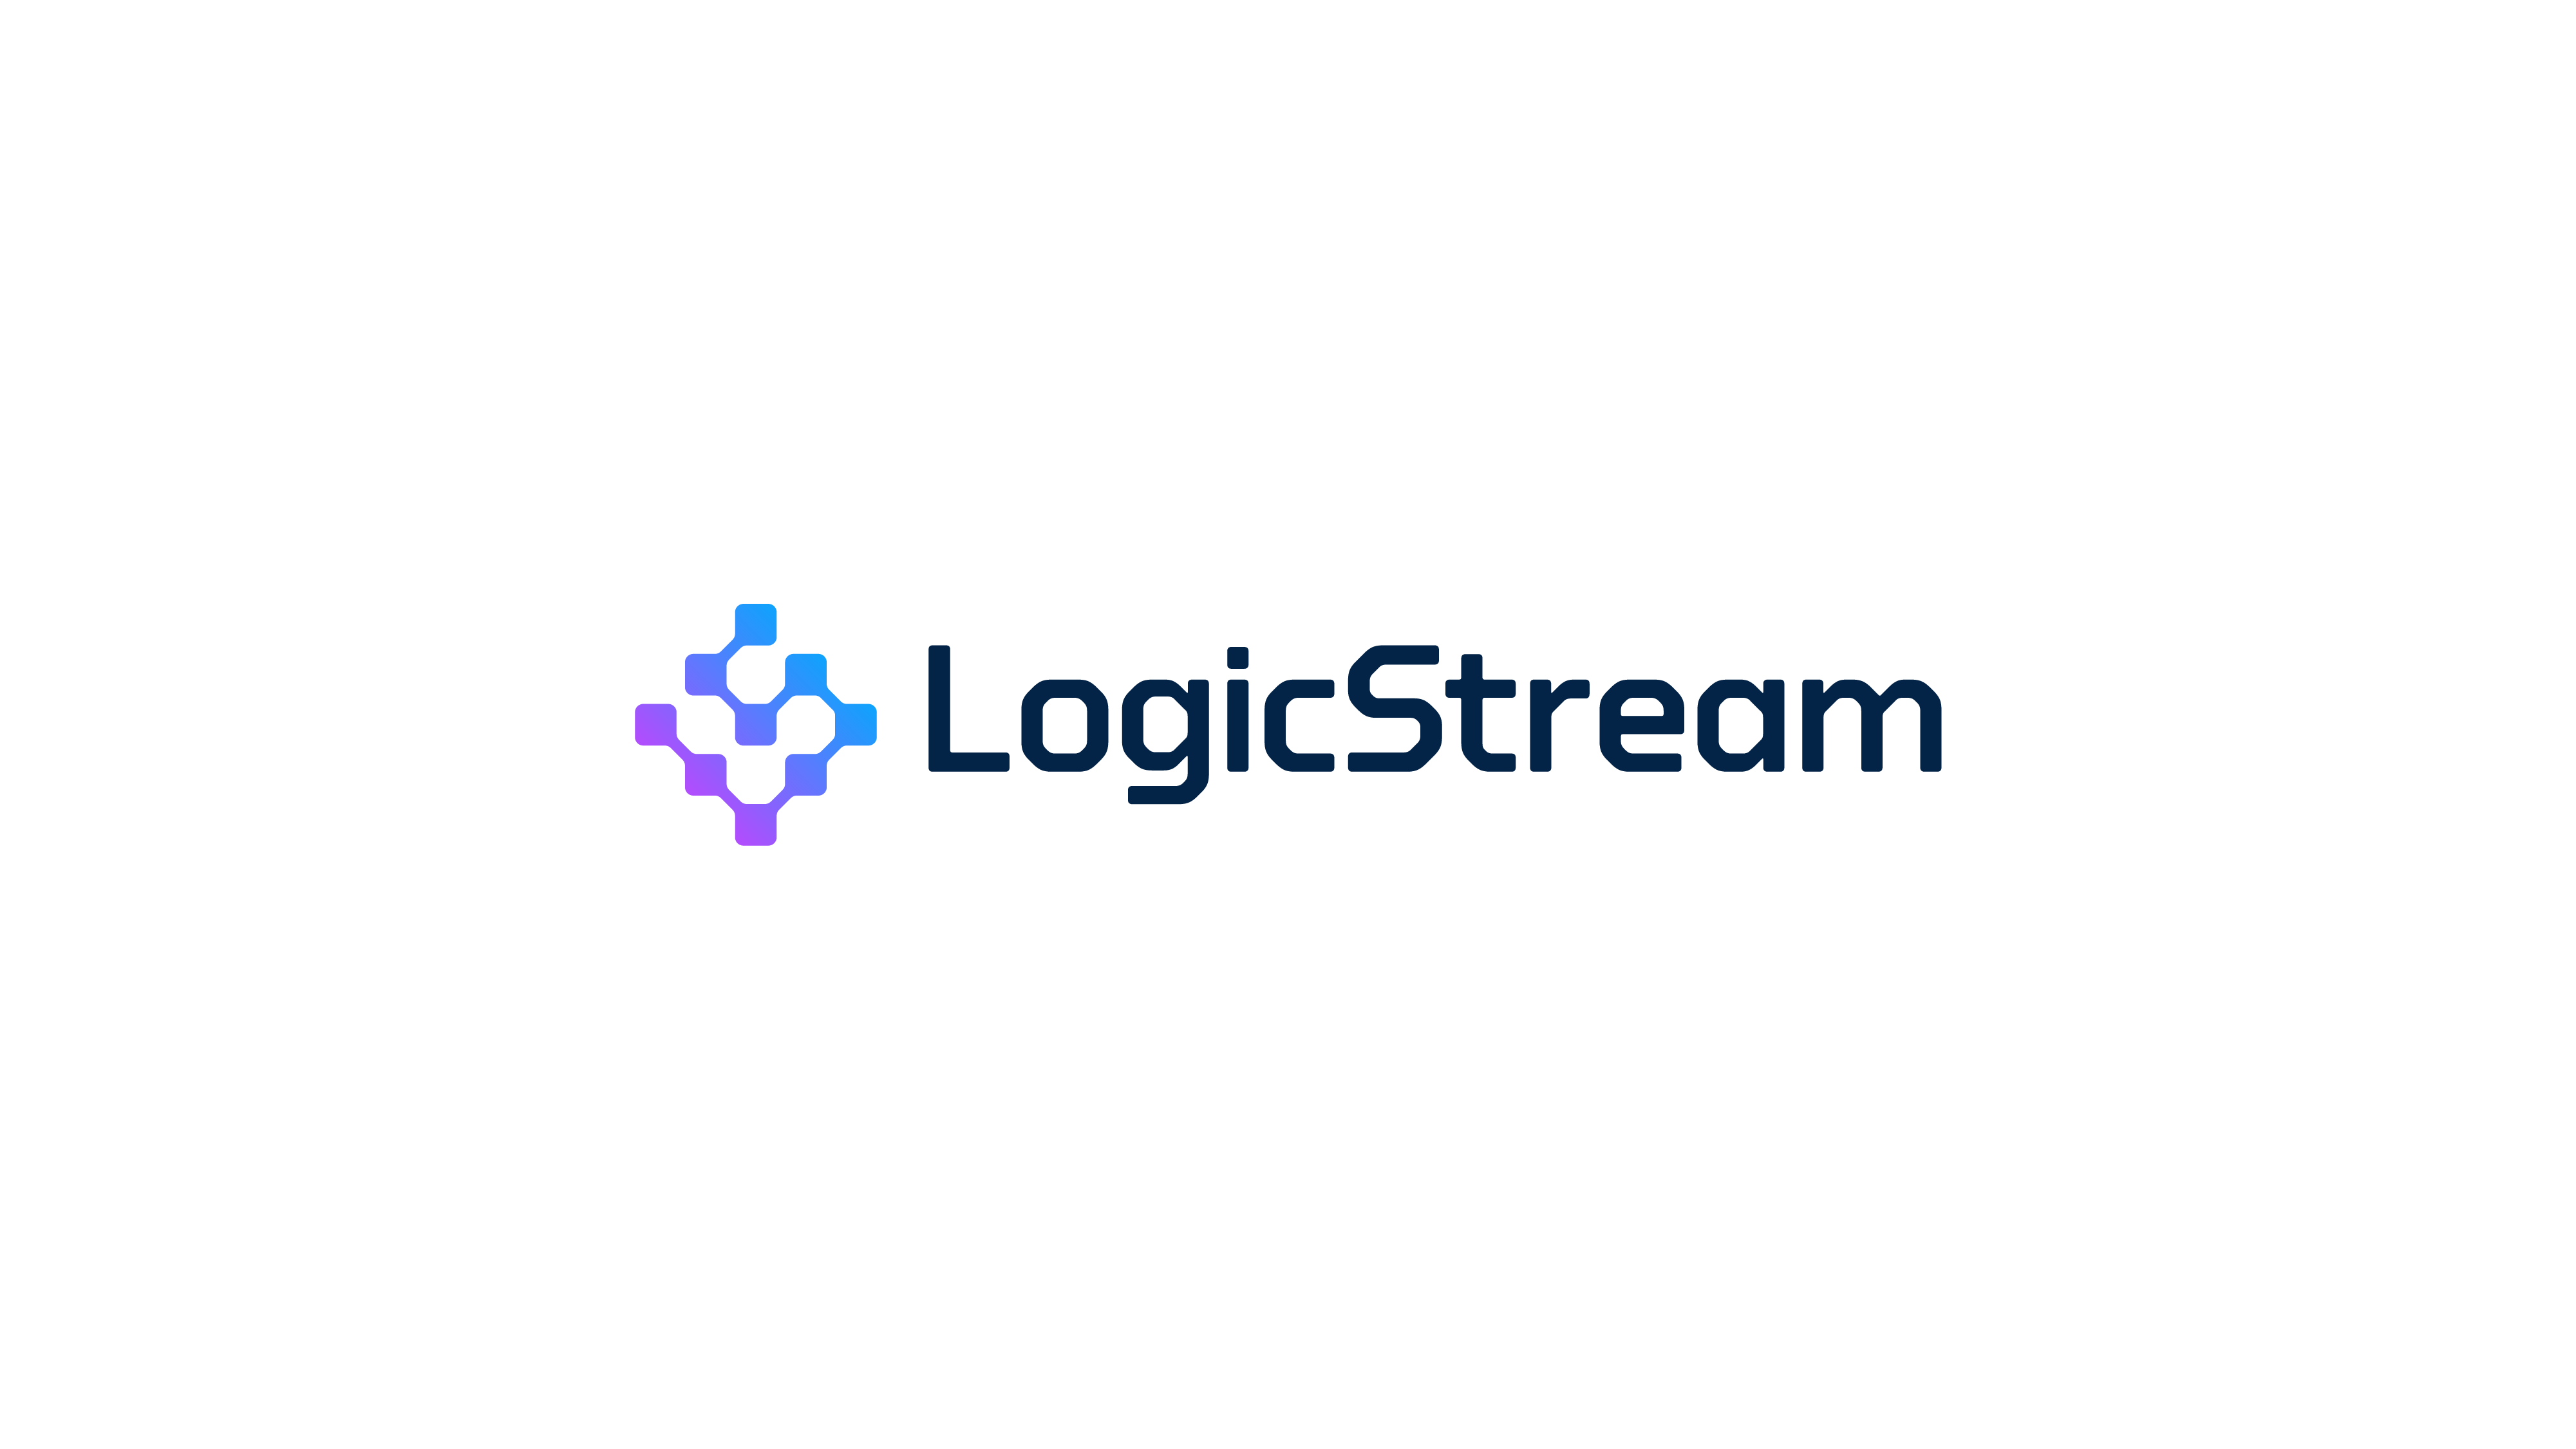 LS logo built by connecting dots